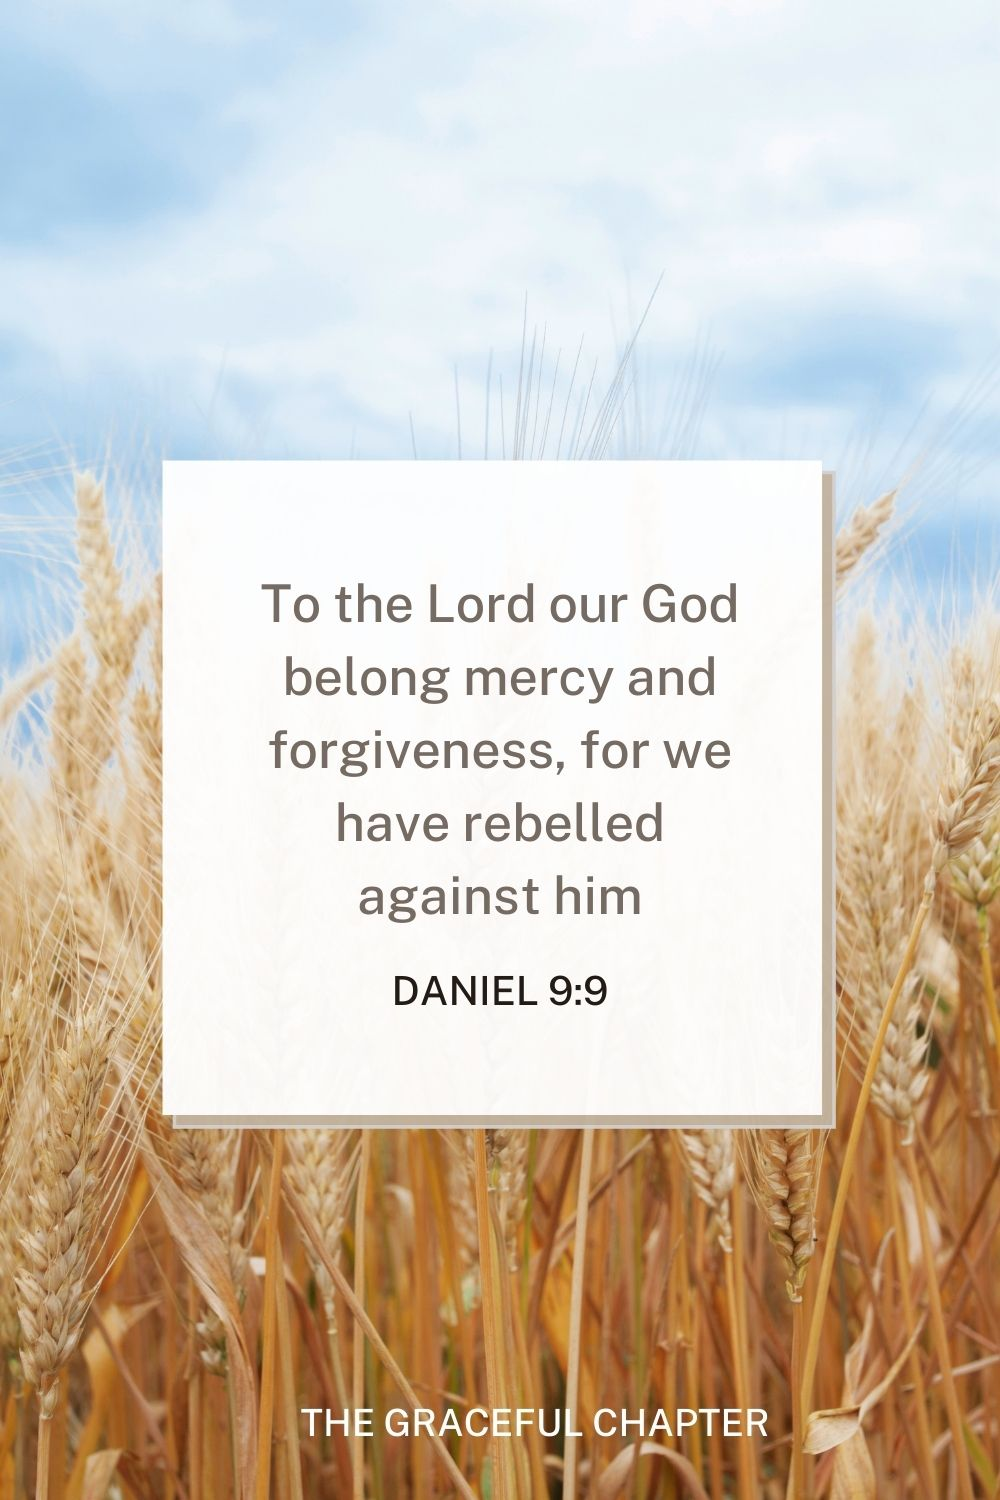 To the Lord our God belong mercy and forgiveness, for we have rebelled against him Daniel 9:9